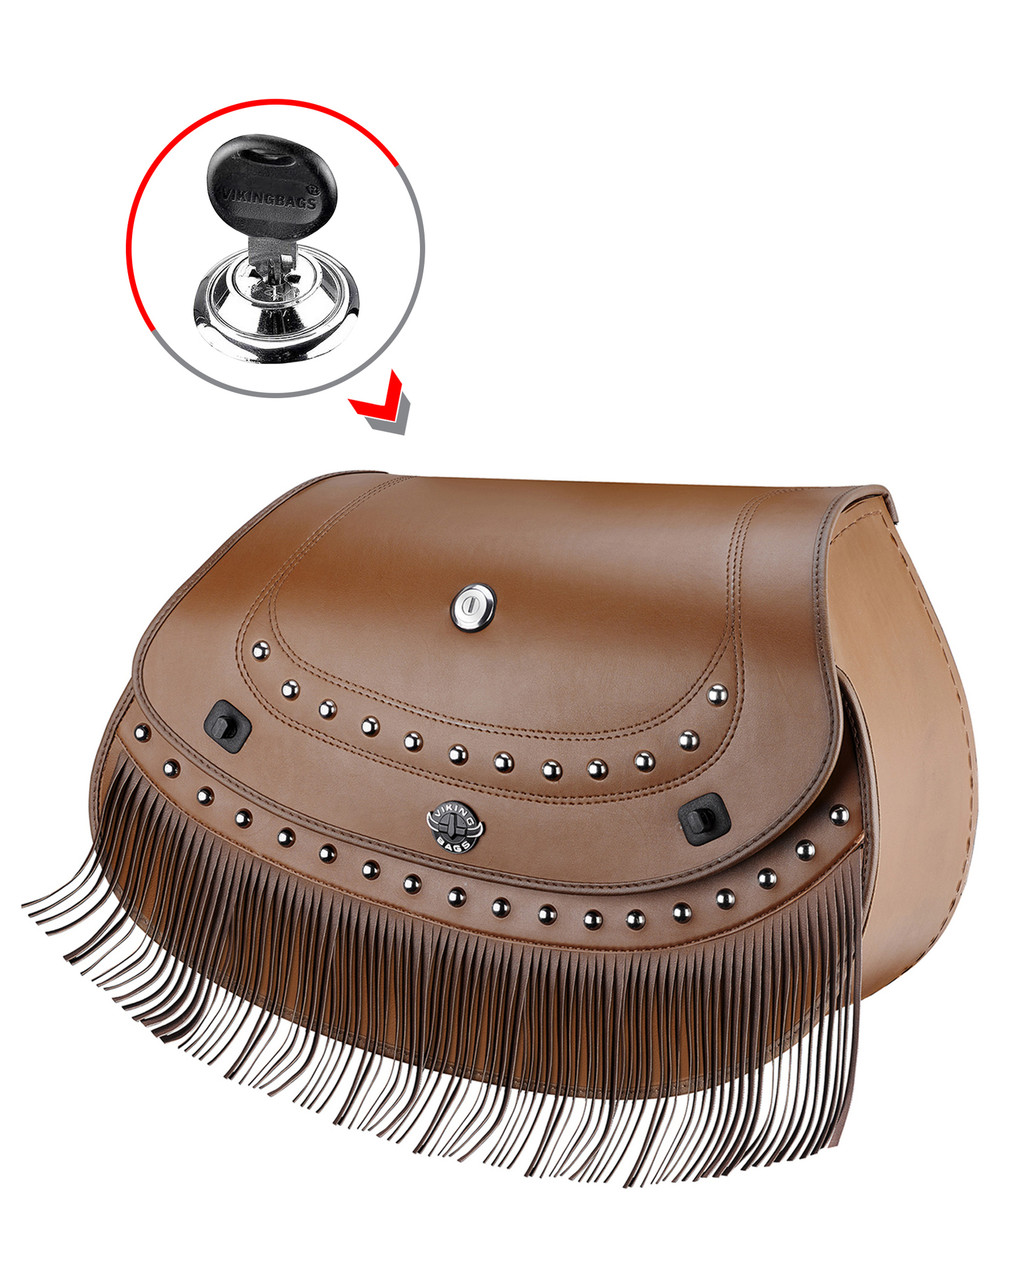 Indian Chief Vintage Viking Indian Specific Brown Leather Motorcycle Saddlebags Key Lockable View